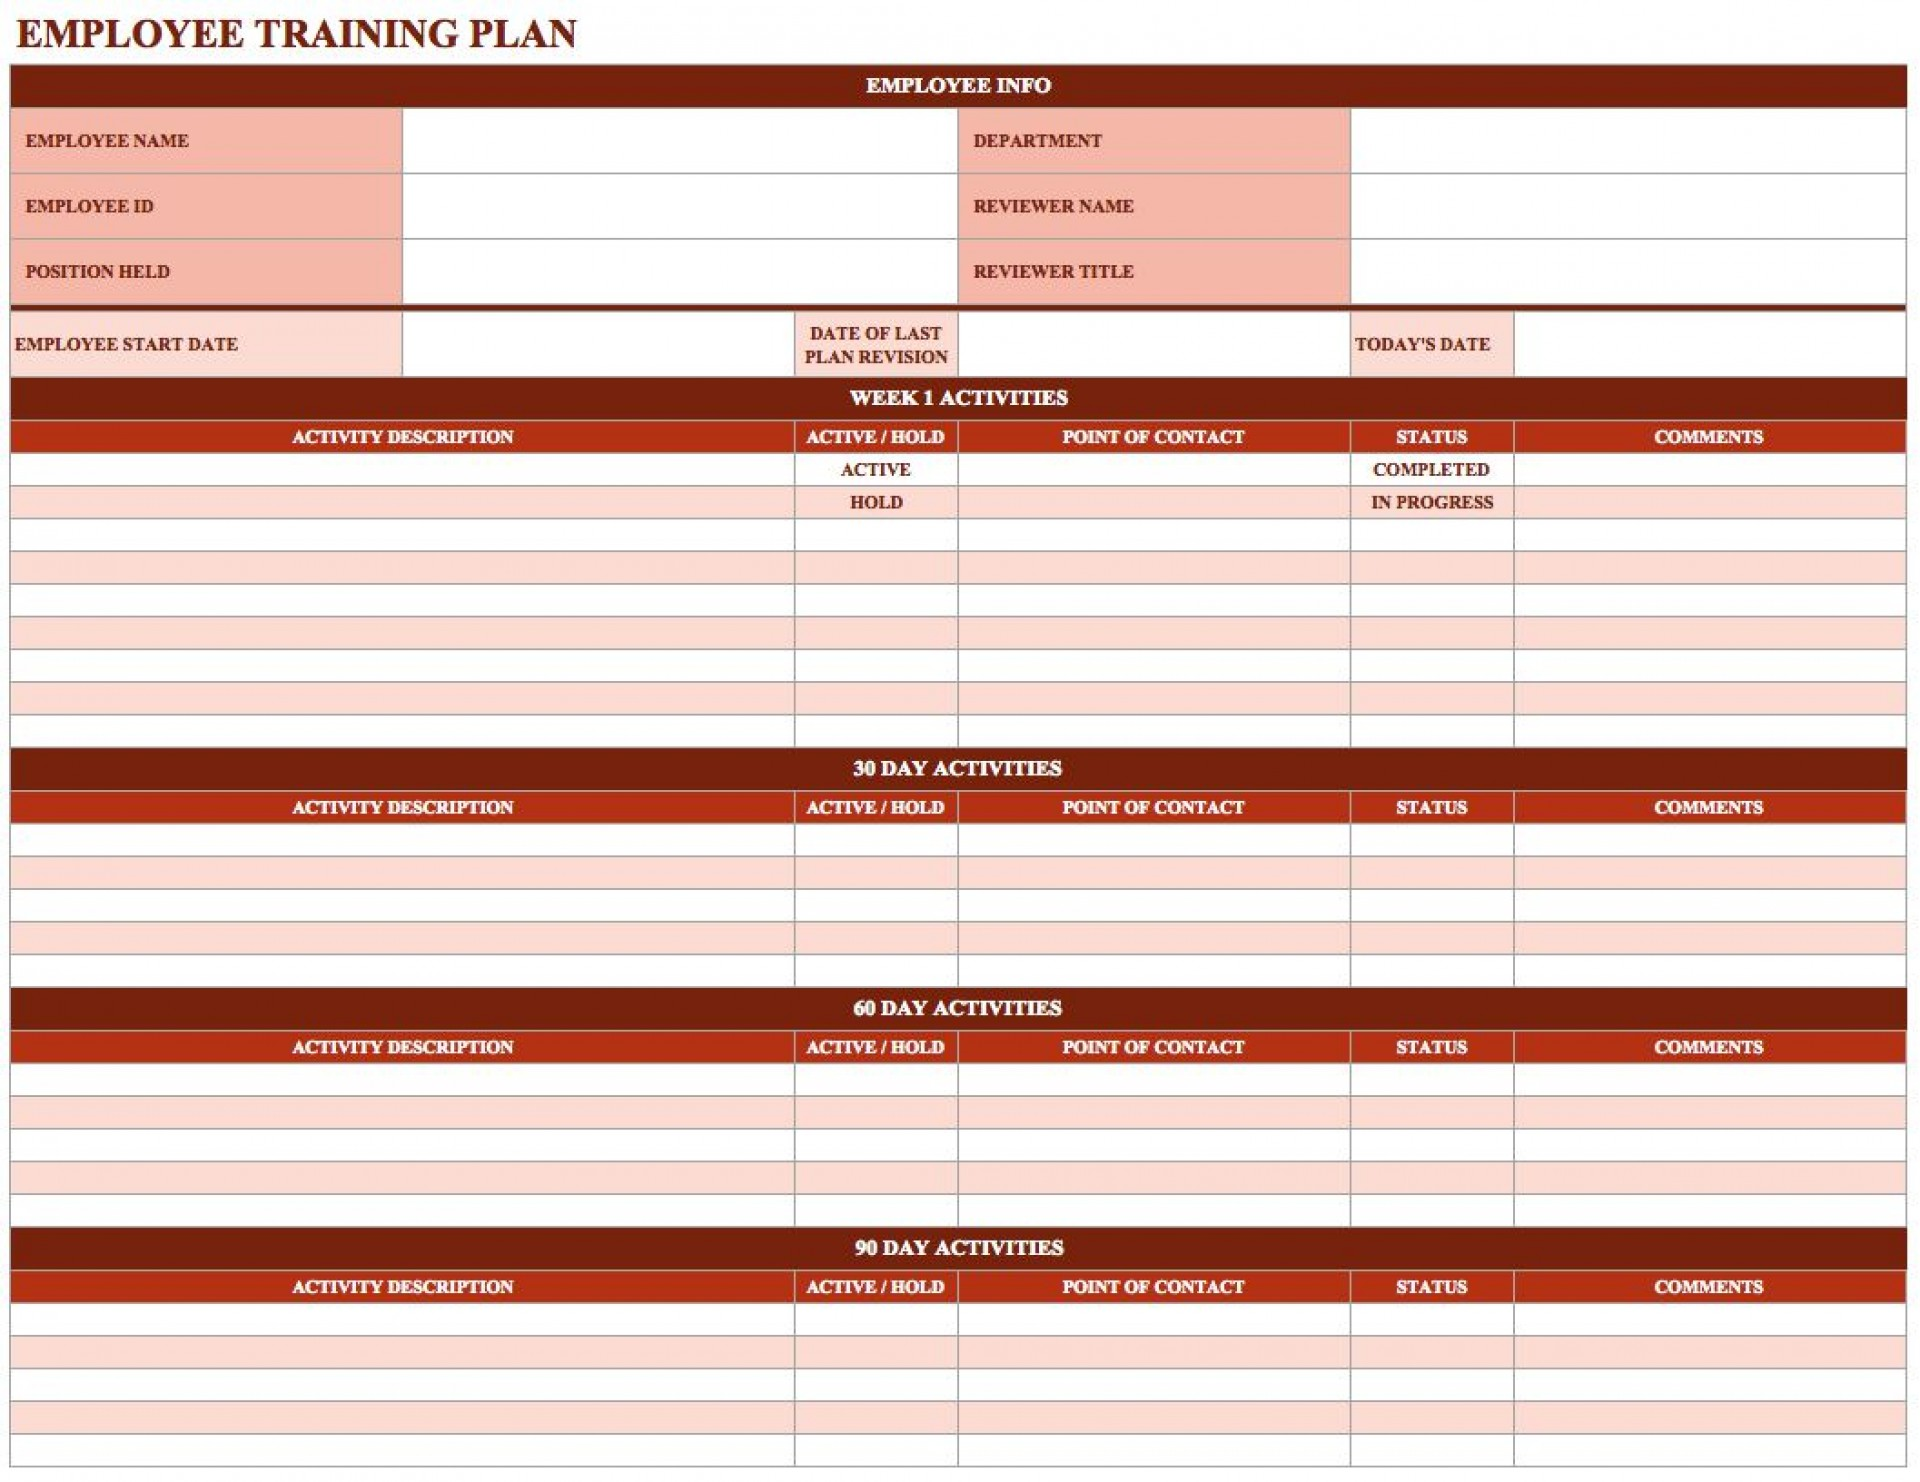 001 Fascinating Employee Training Plan Template Excel Picture  Free Download New Schedule1920